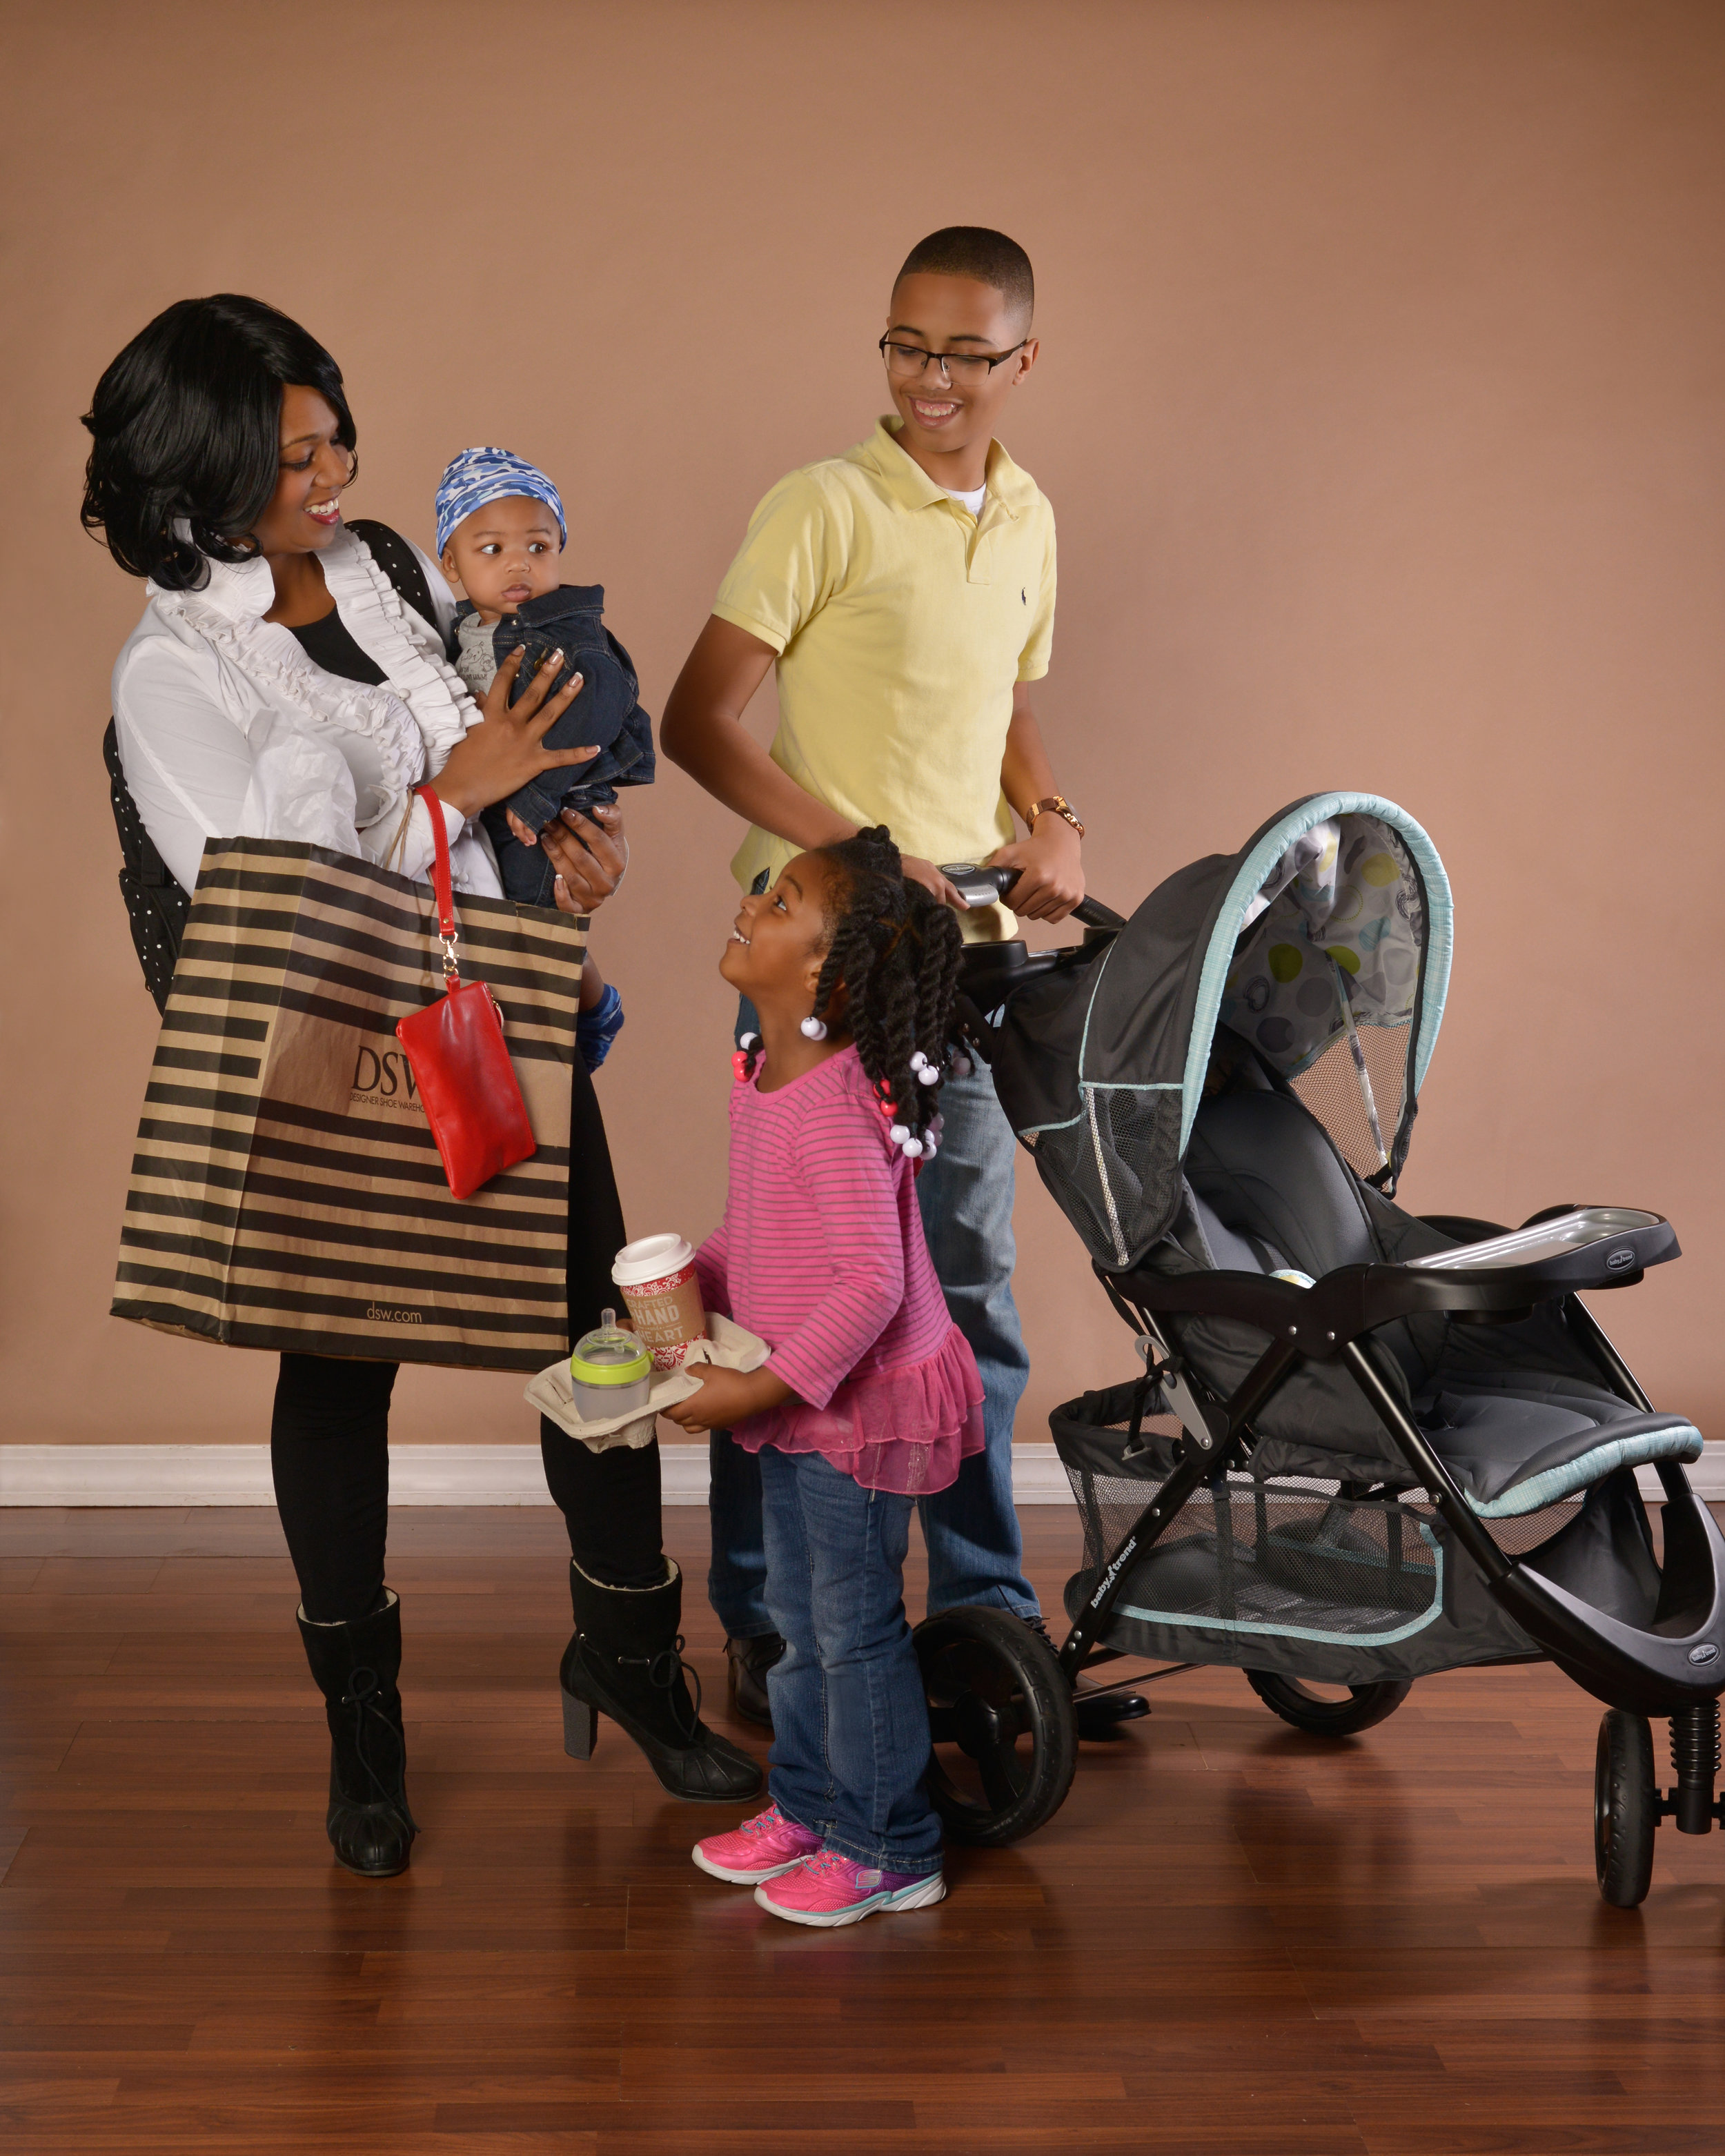 LUX Baby Founder/CEO Lisa Blacknoll, along with three children, Meciah, London and baby Myles.